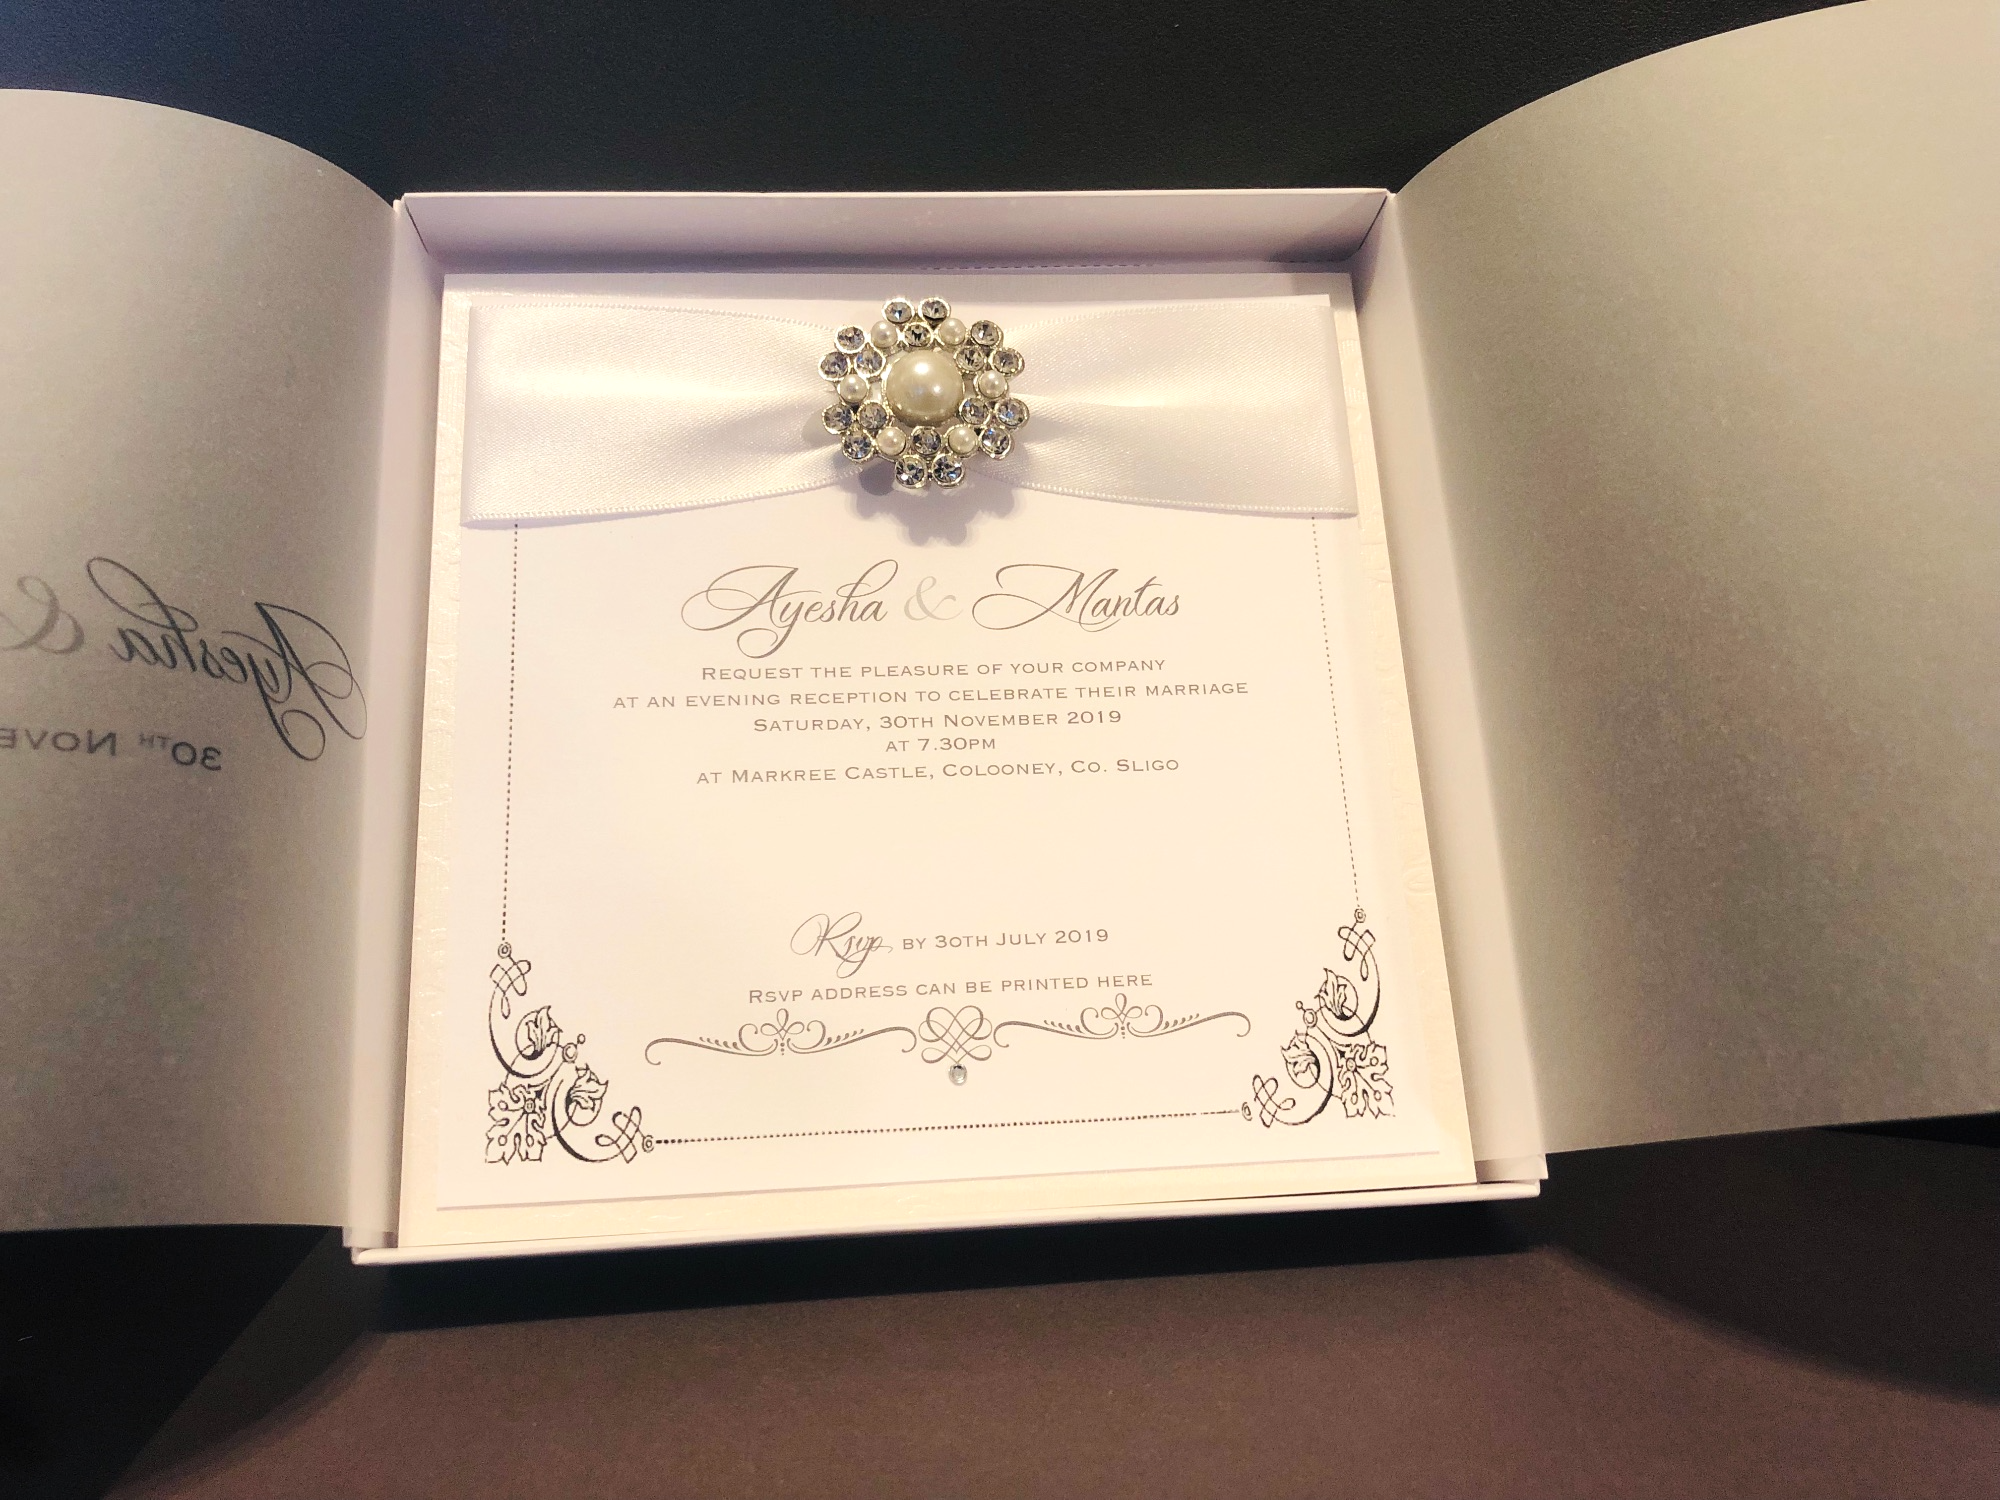 Luxury wedding invitation in box with pearl brooch and white ribbon